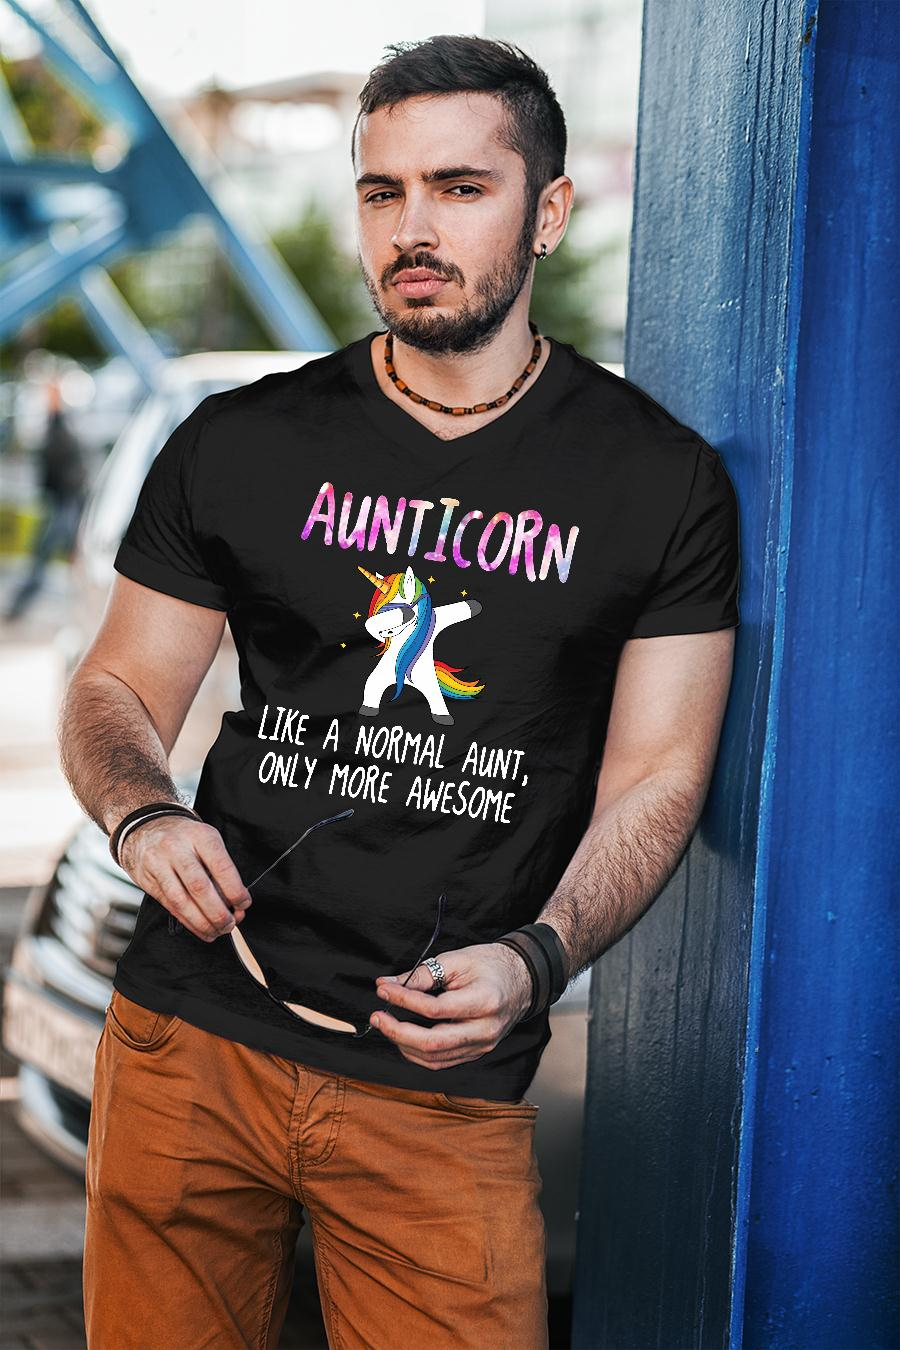 Aunticorn dabbing like a normal aunt only more awesome shirt unisex